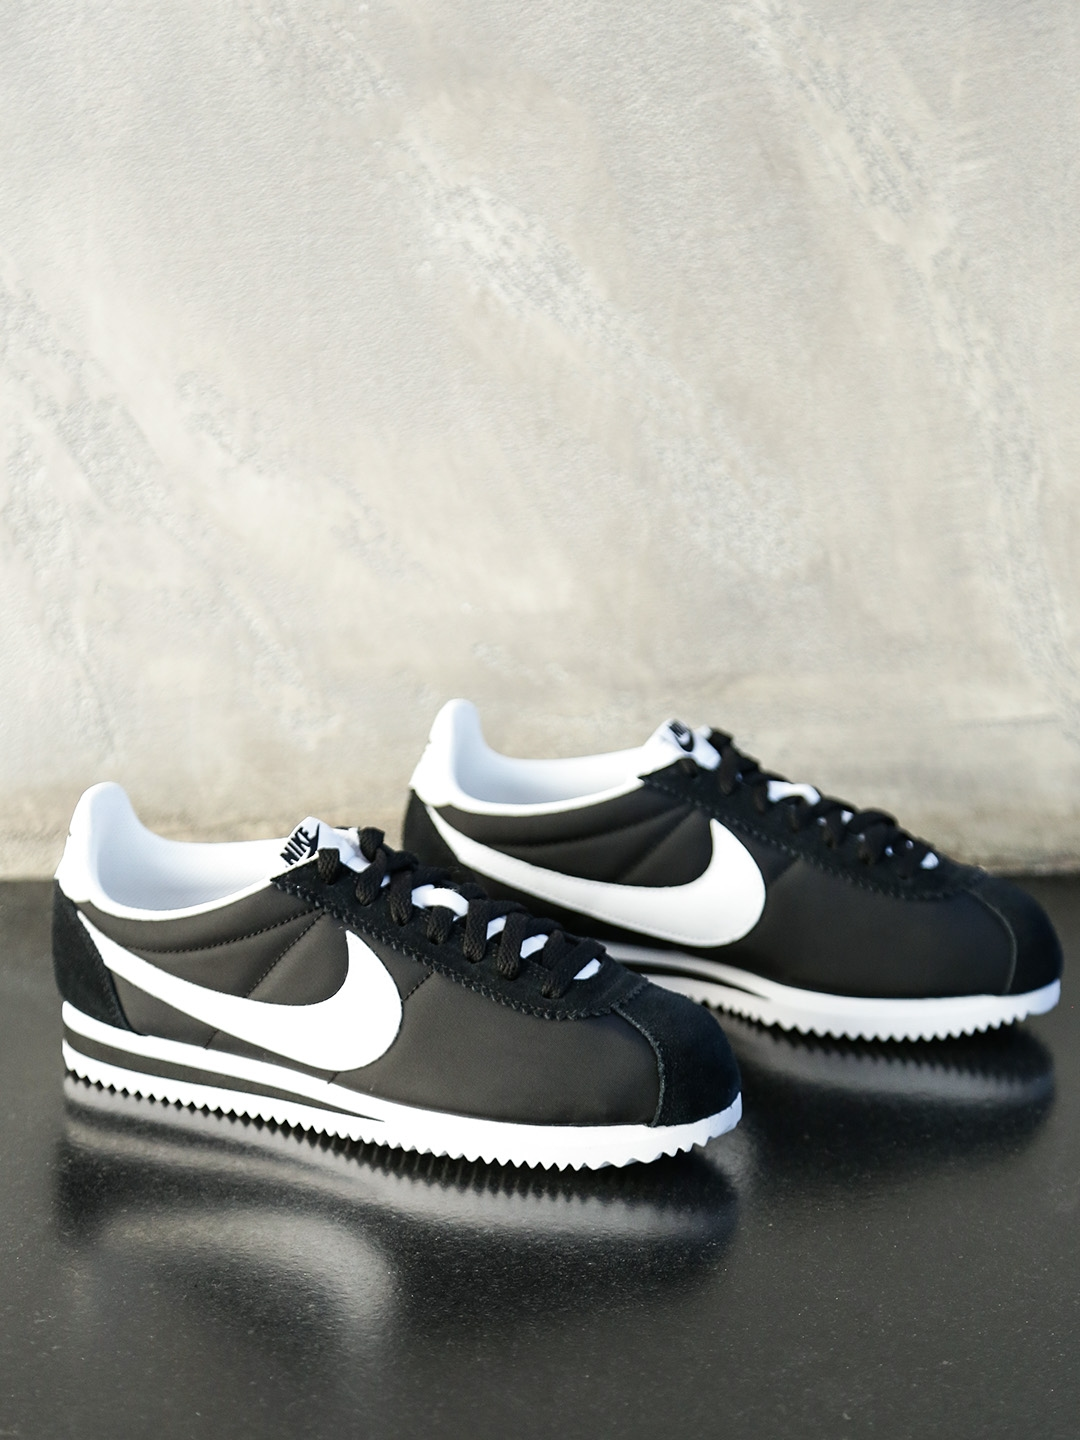 super popular 6360d 86b78 Nike Women Black CLASSIC CORTEZ NYLON Sneakers